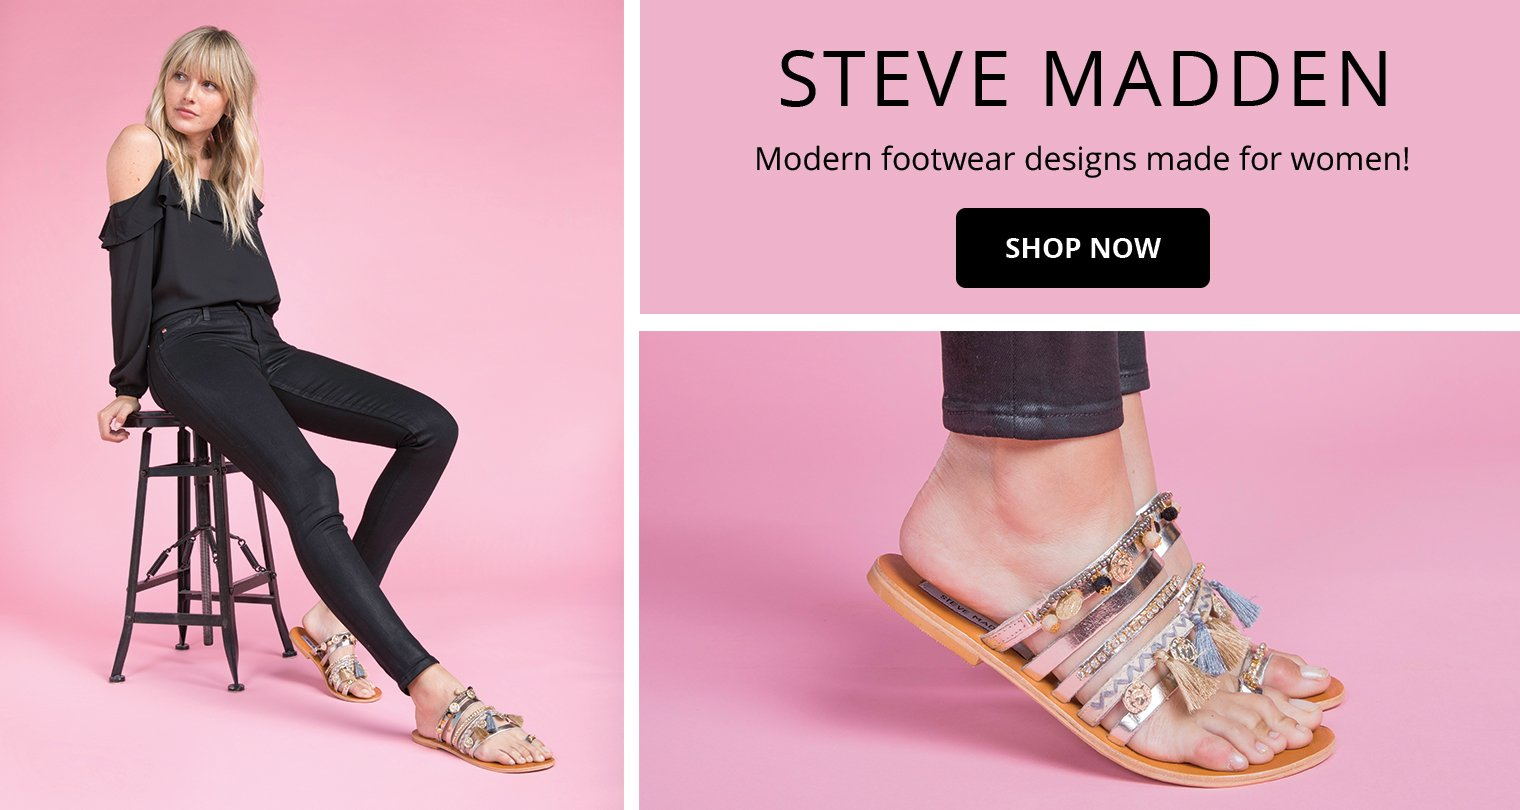 Steve Madden. Modern footwear designs made for women! Shop Now.